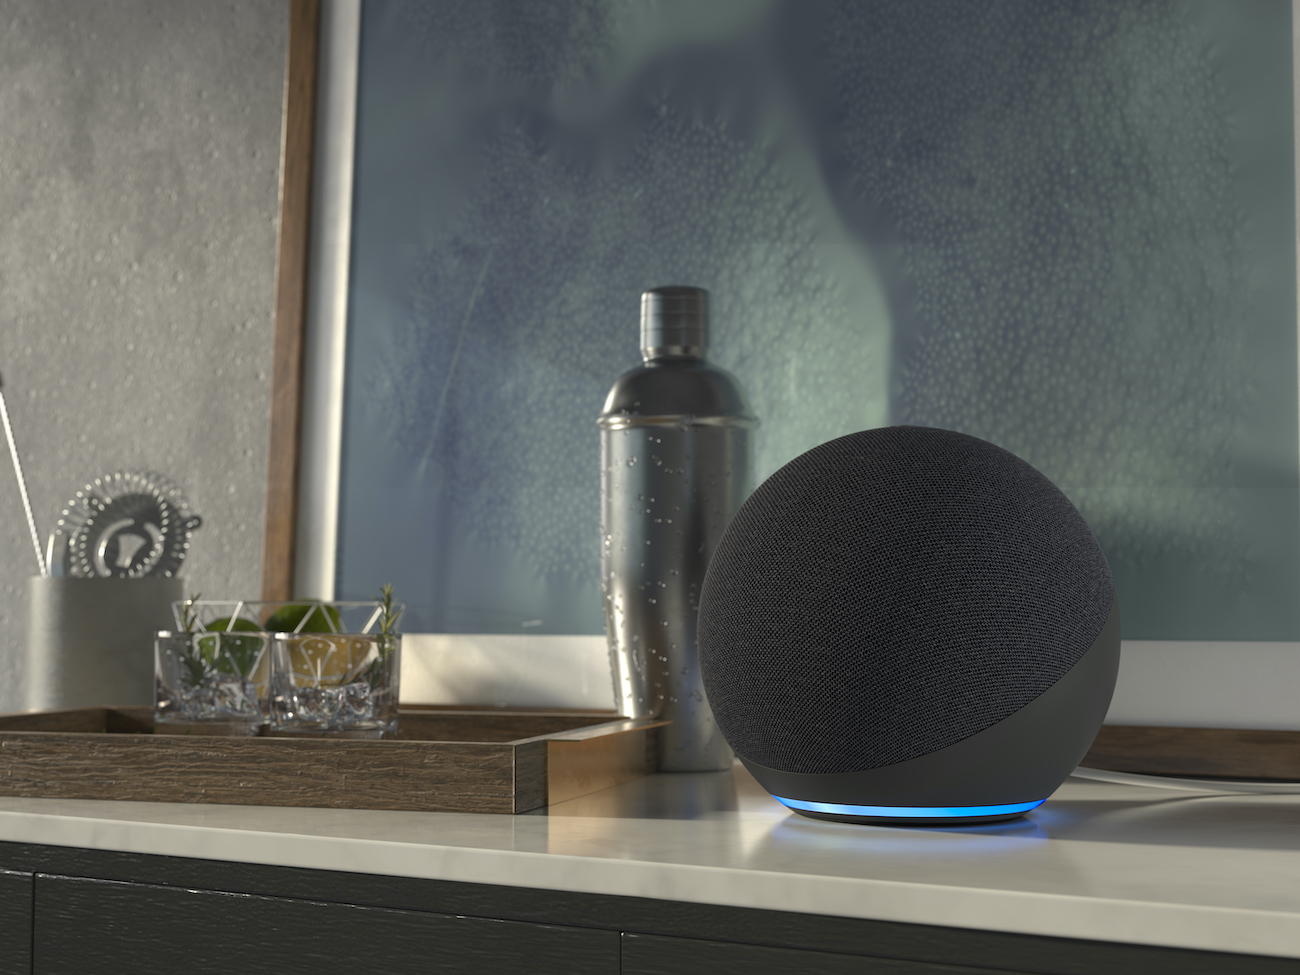 Amazon's hardware event: All the biggest announcements